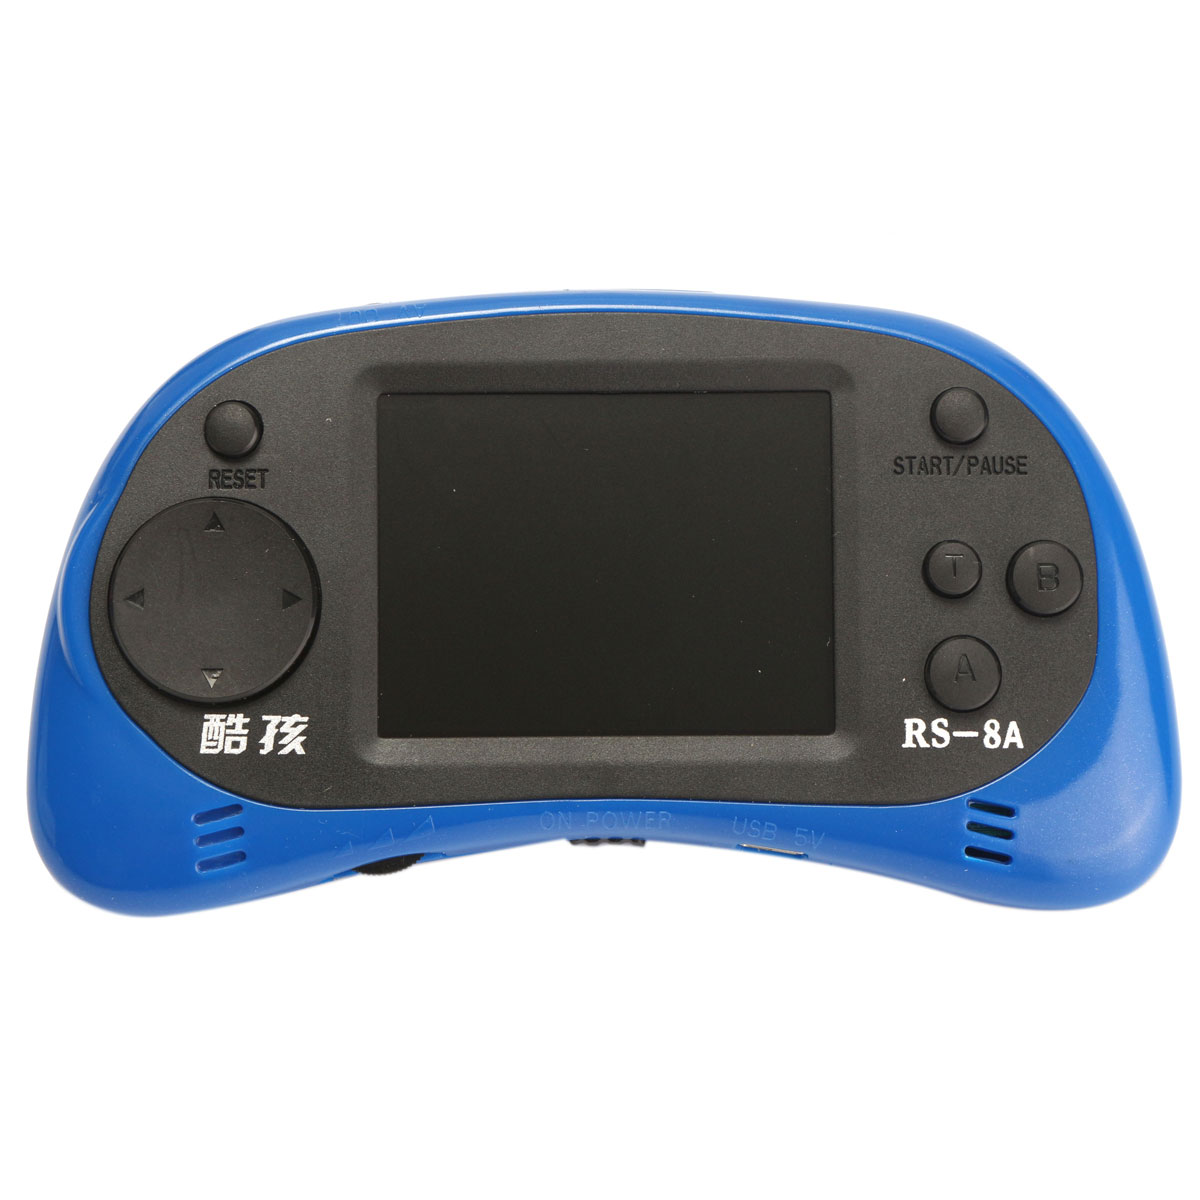 Coolboy RS-8A 260 In 1 Portable Handheld Game Console B